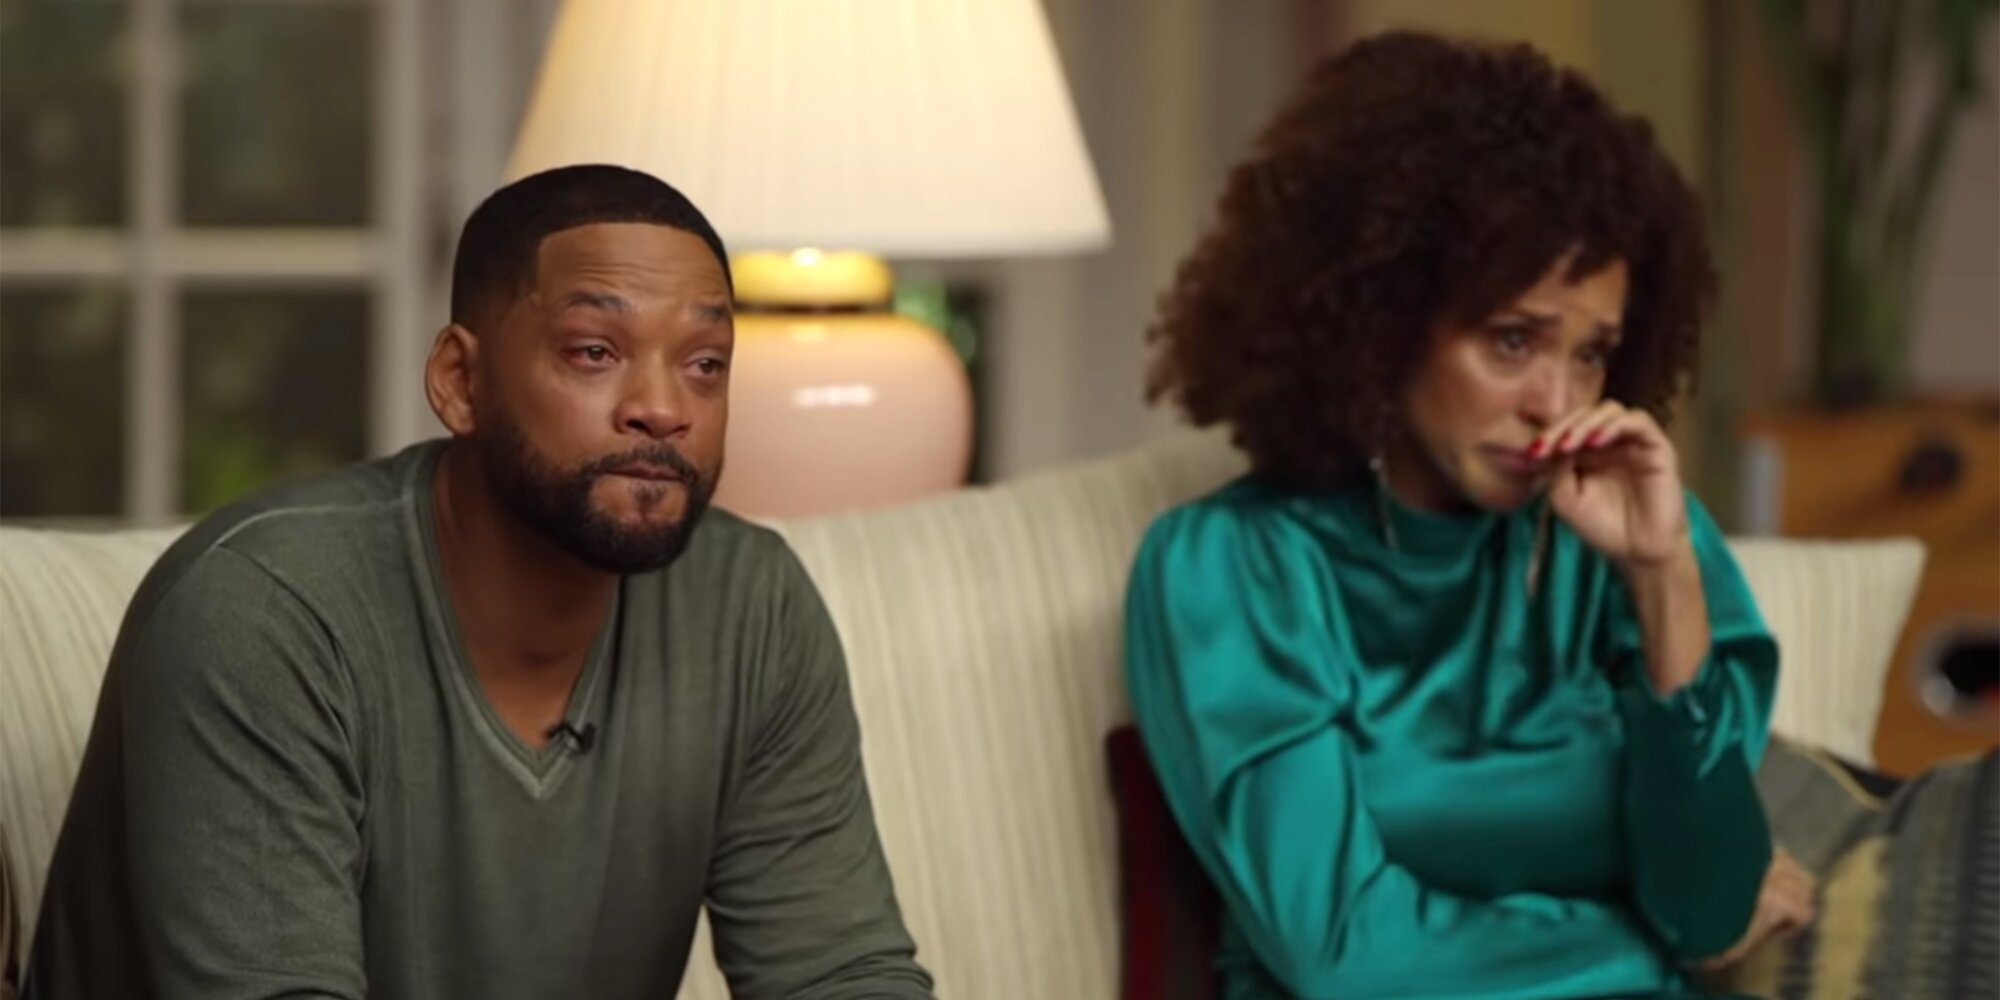 Will Smith and Janet Hubert reconcile in emotional 'Fresh Prince' reunion: 'You're still my Aunt Viv'